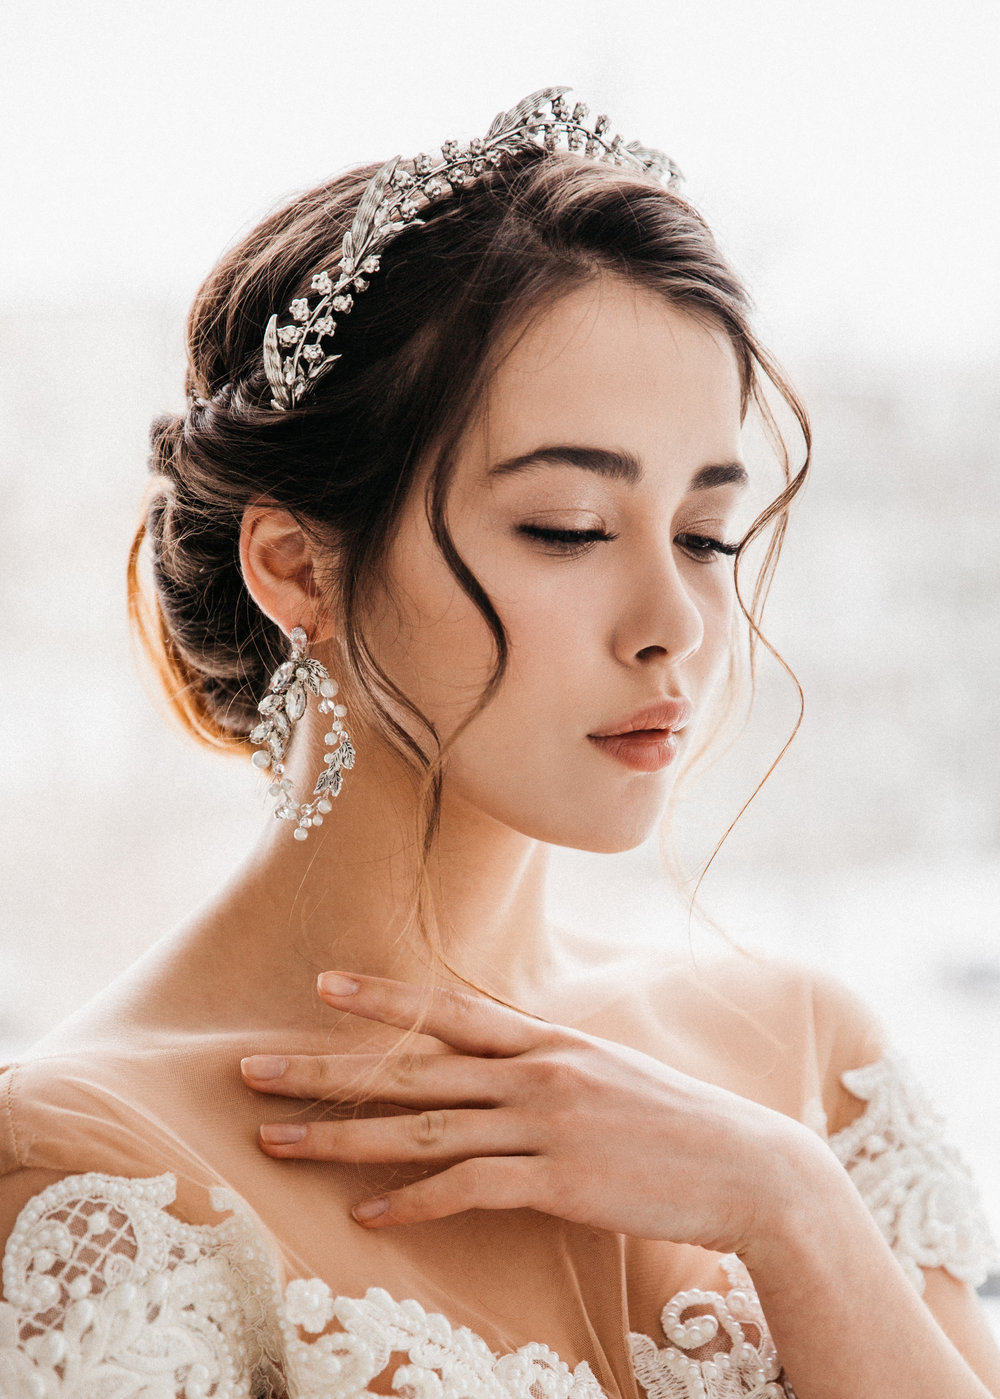 Find your perfect Bridal Accessory - Handmade in SwitzerlandUnique DesignPossibility to Rush OrdersFree Shipping WorldwideCustomisable OrdersFast response on your questions